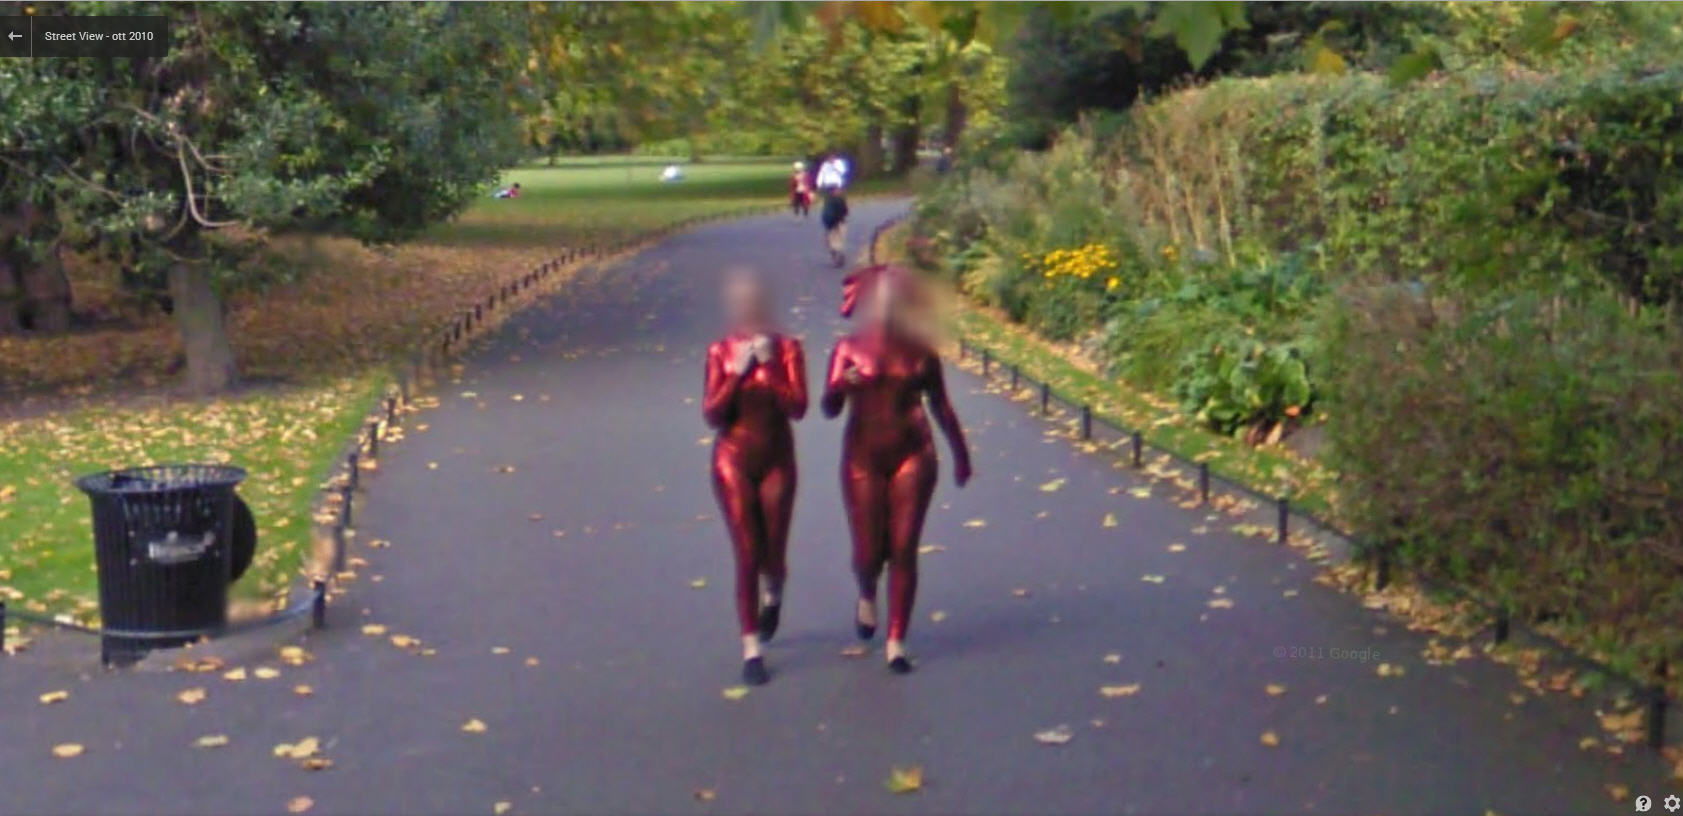 Aliens going for a stroll in an Irish park